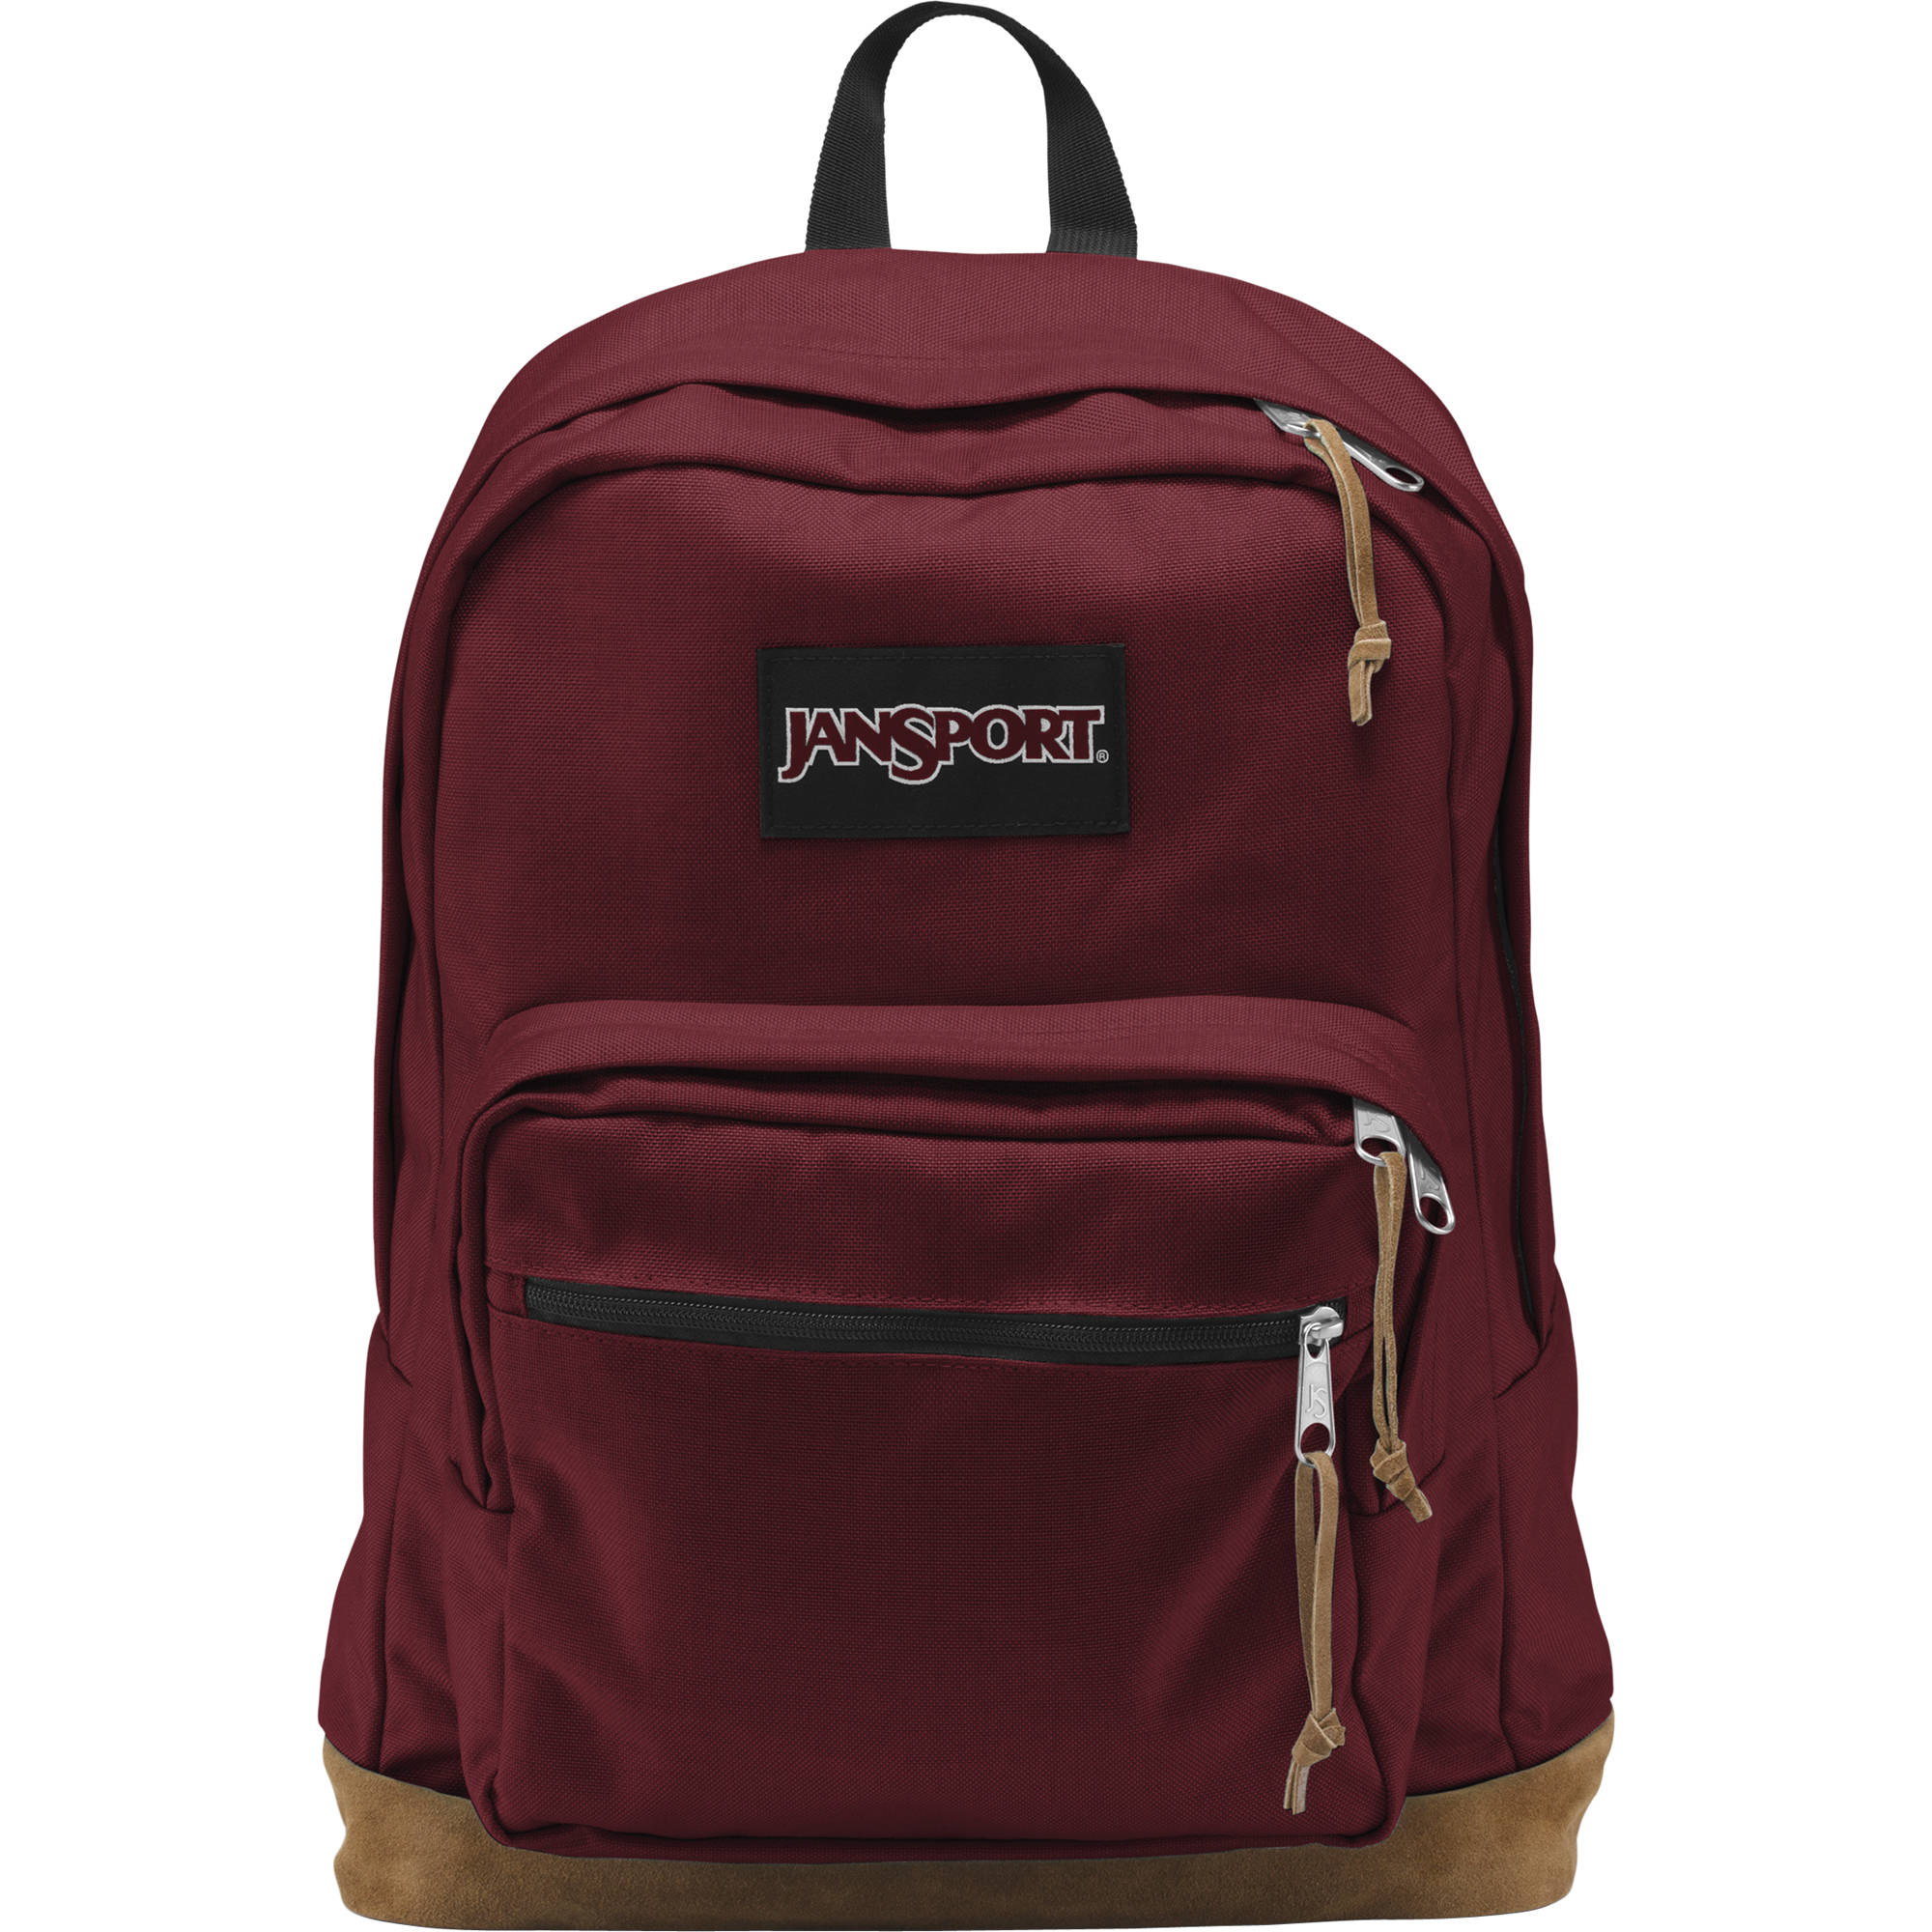 Jansport Maroon Backpack jisbFGCa